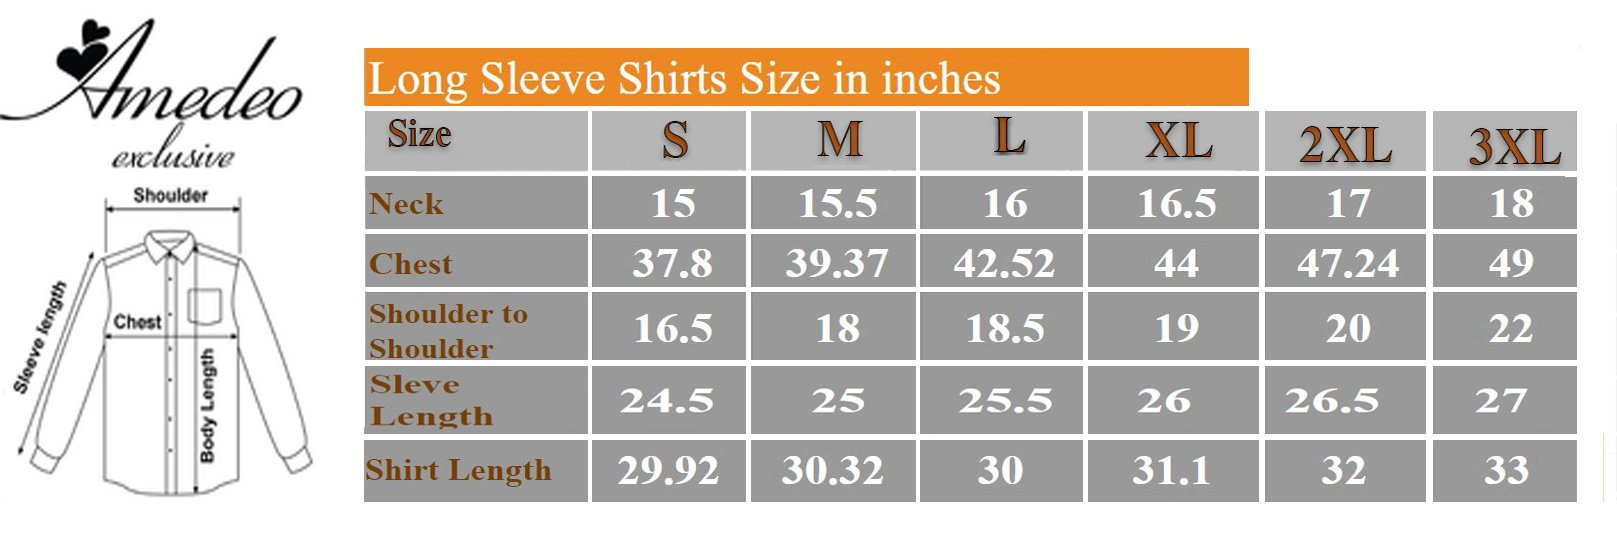 Grey Stars Mens Slim Fit Designer Dress Shirt - tailored Cotton Shirts for Work and Casual Wear - Amedeo Exclusive